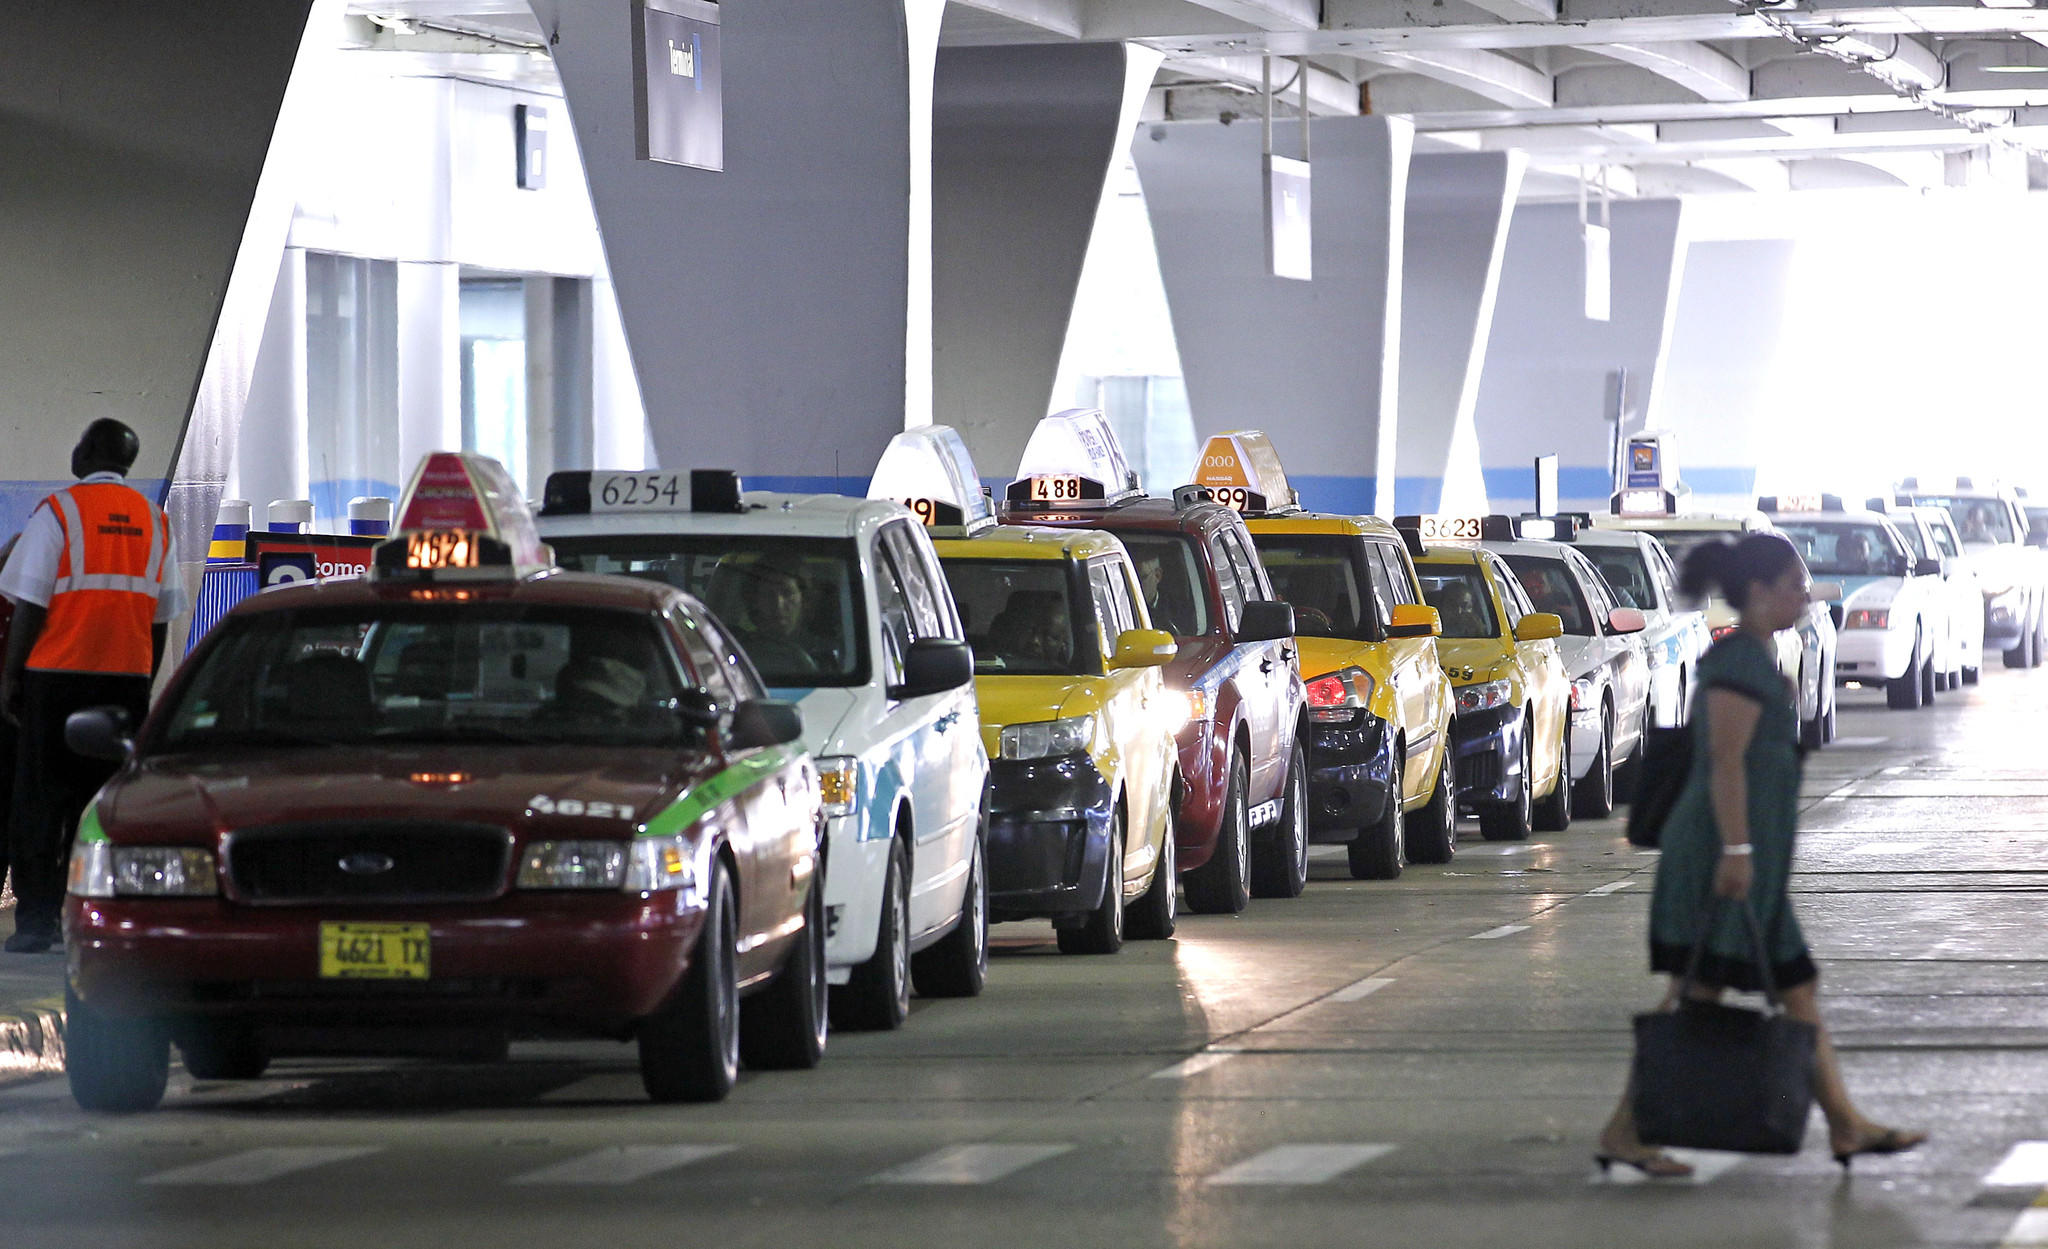 Taxis line up at a taxi stand at Terminal 1 arrivals area at Chicago O'Hare International Airport on Monday, July 2, 2012.